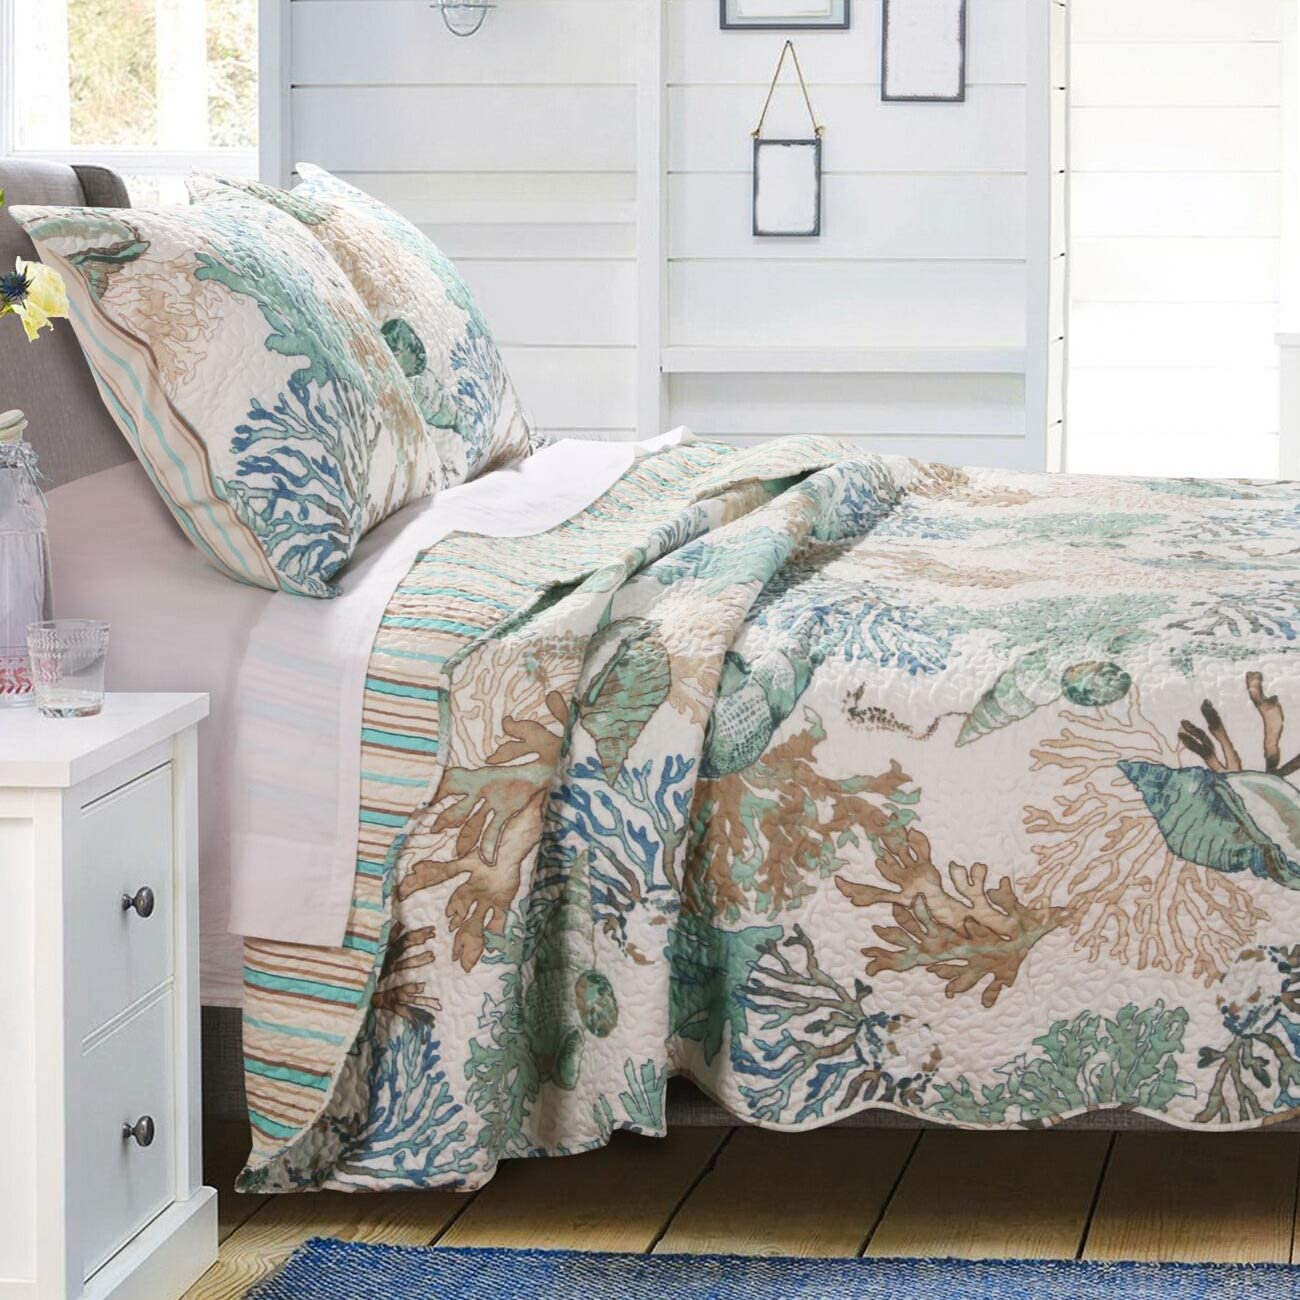 GH Beach Theme Ocean Coastal Quilt Full/Queen Bedding Set - Nautical Seashell Beach Tropical Decor - All Season 3 Pieces Bedspread/Coverlet with Shams Green